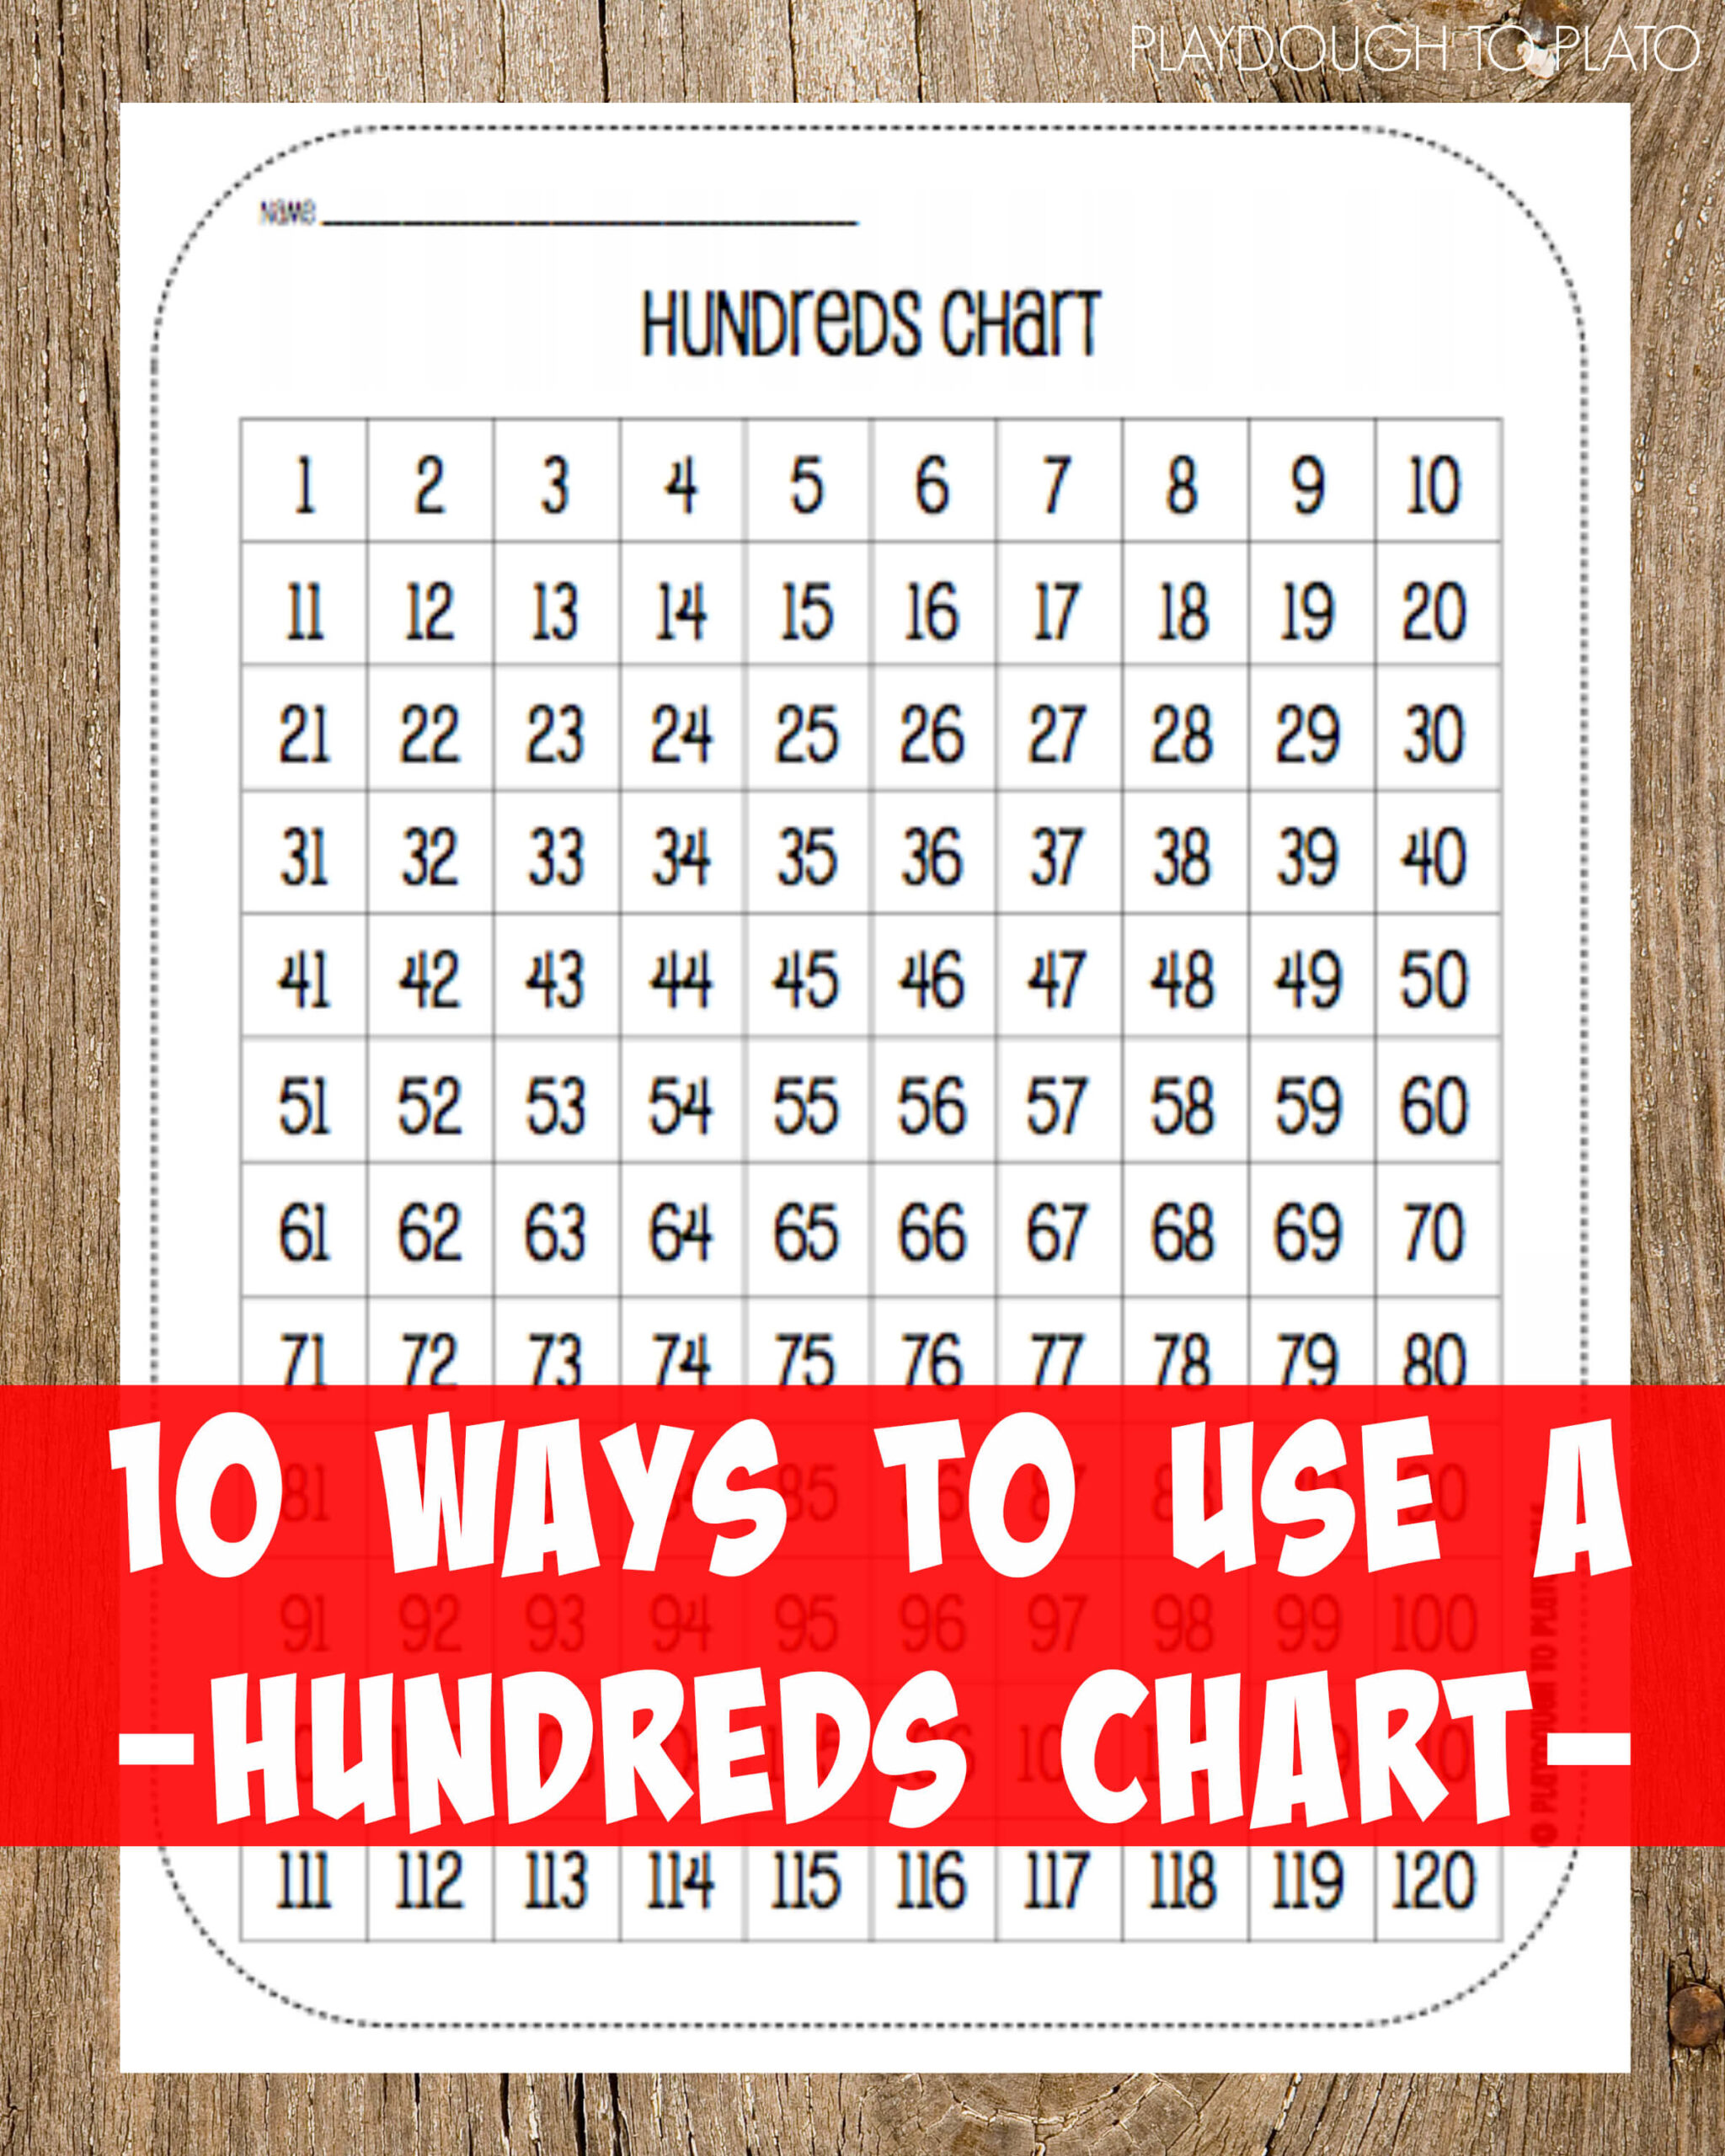 Free Hundred Chart and 10 Ways to Use It